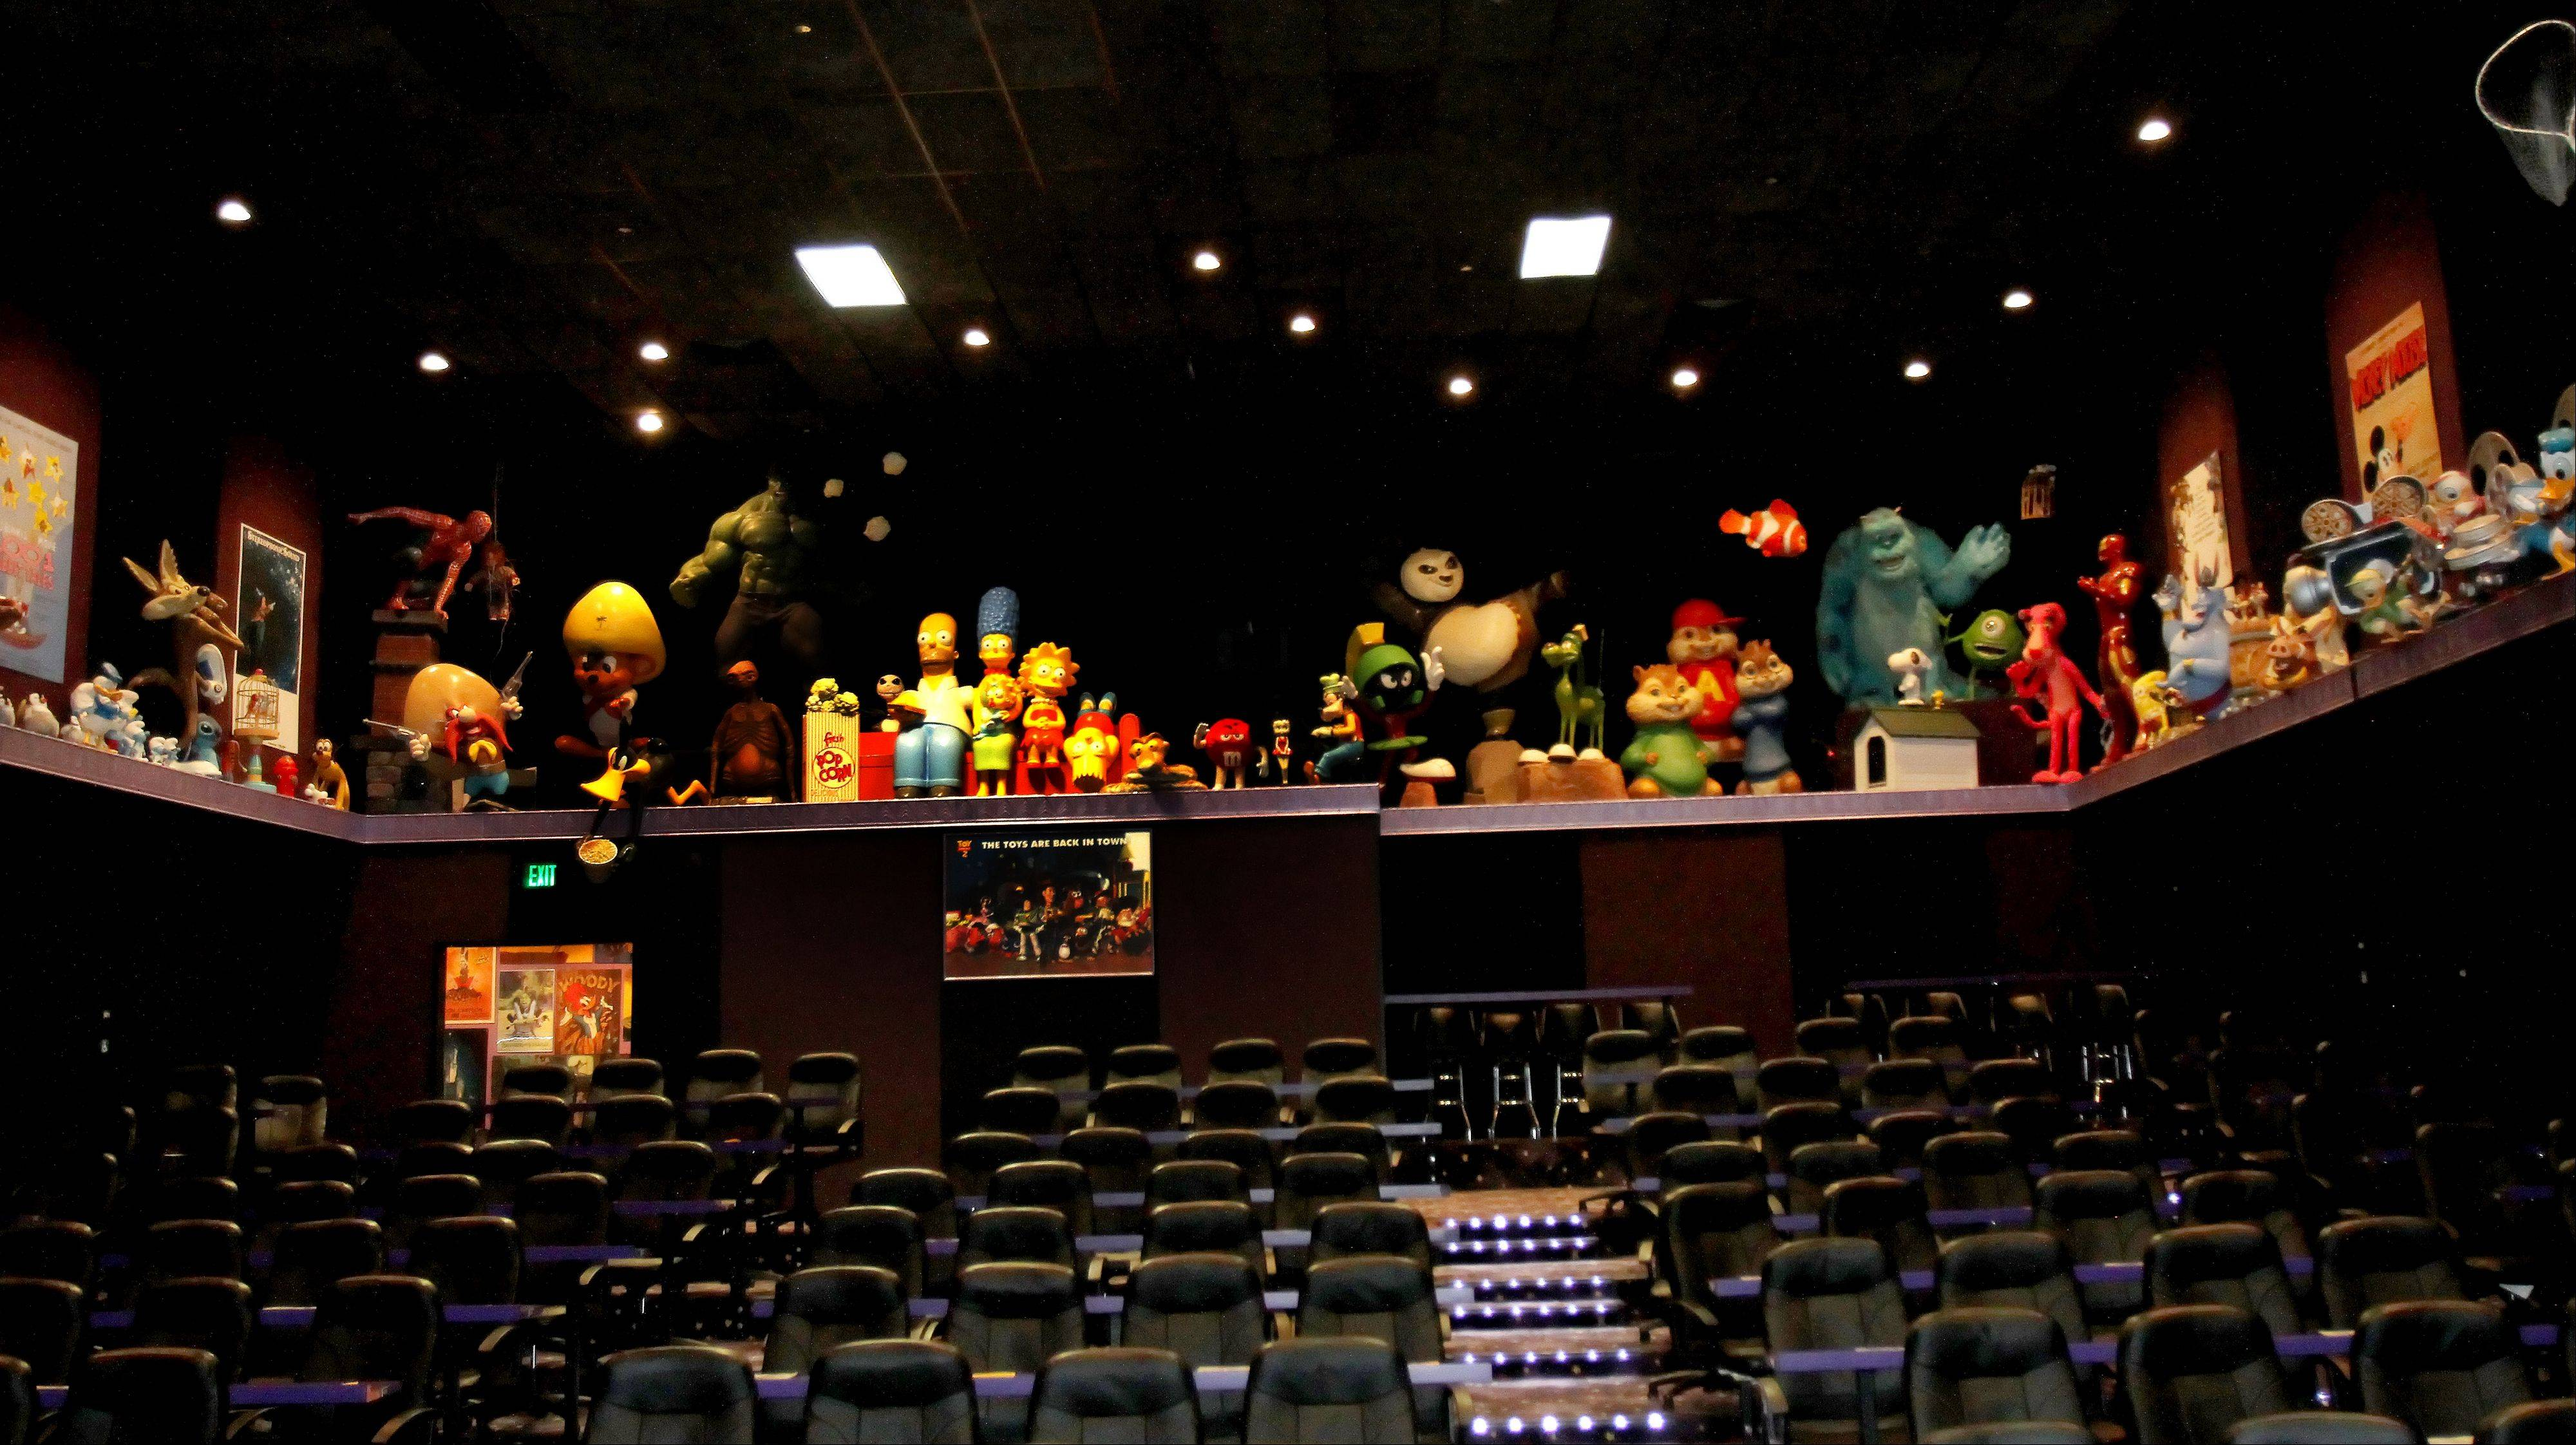 One theater is decorated with all sorts of cartoon characters at the Hollywood Palms Cinema in Naperville.